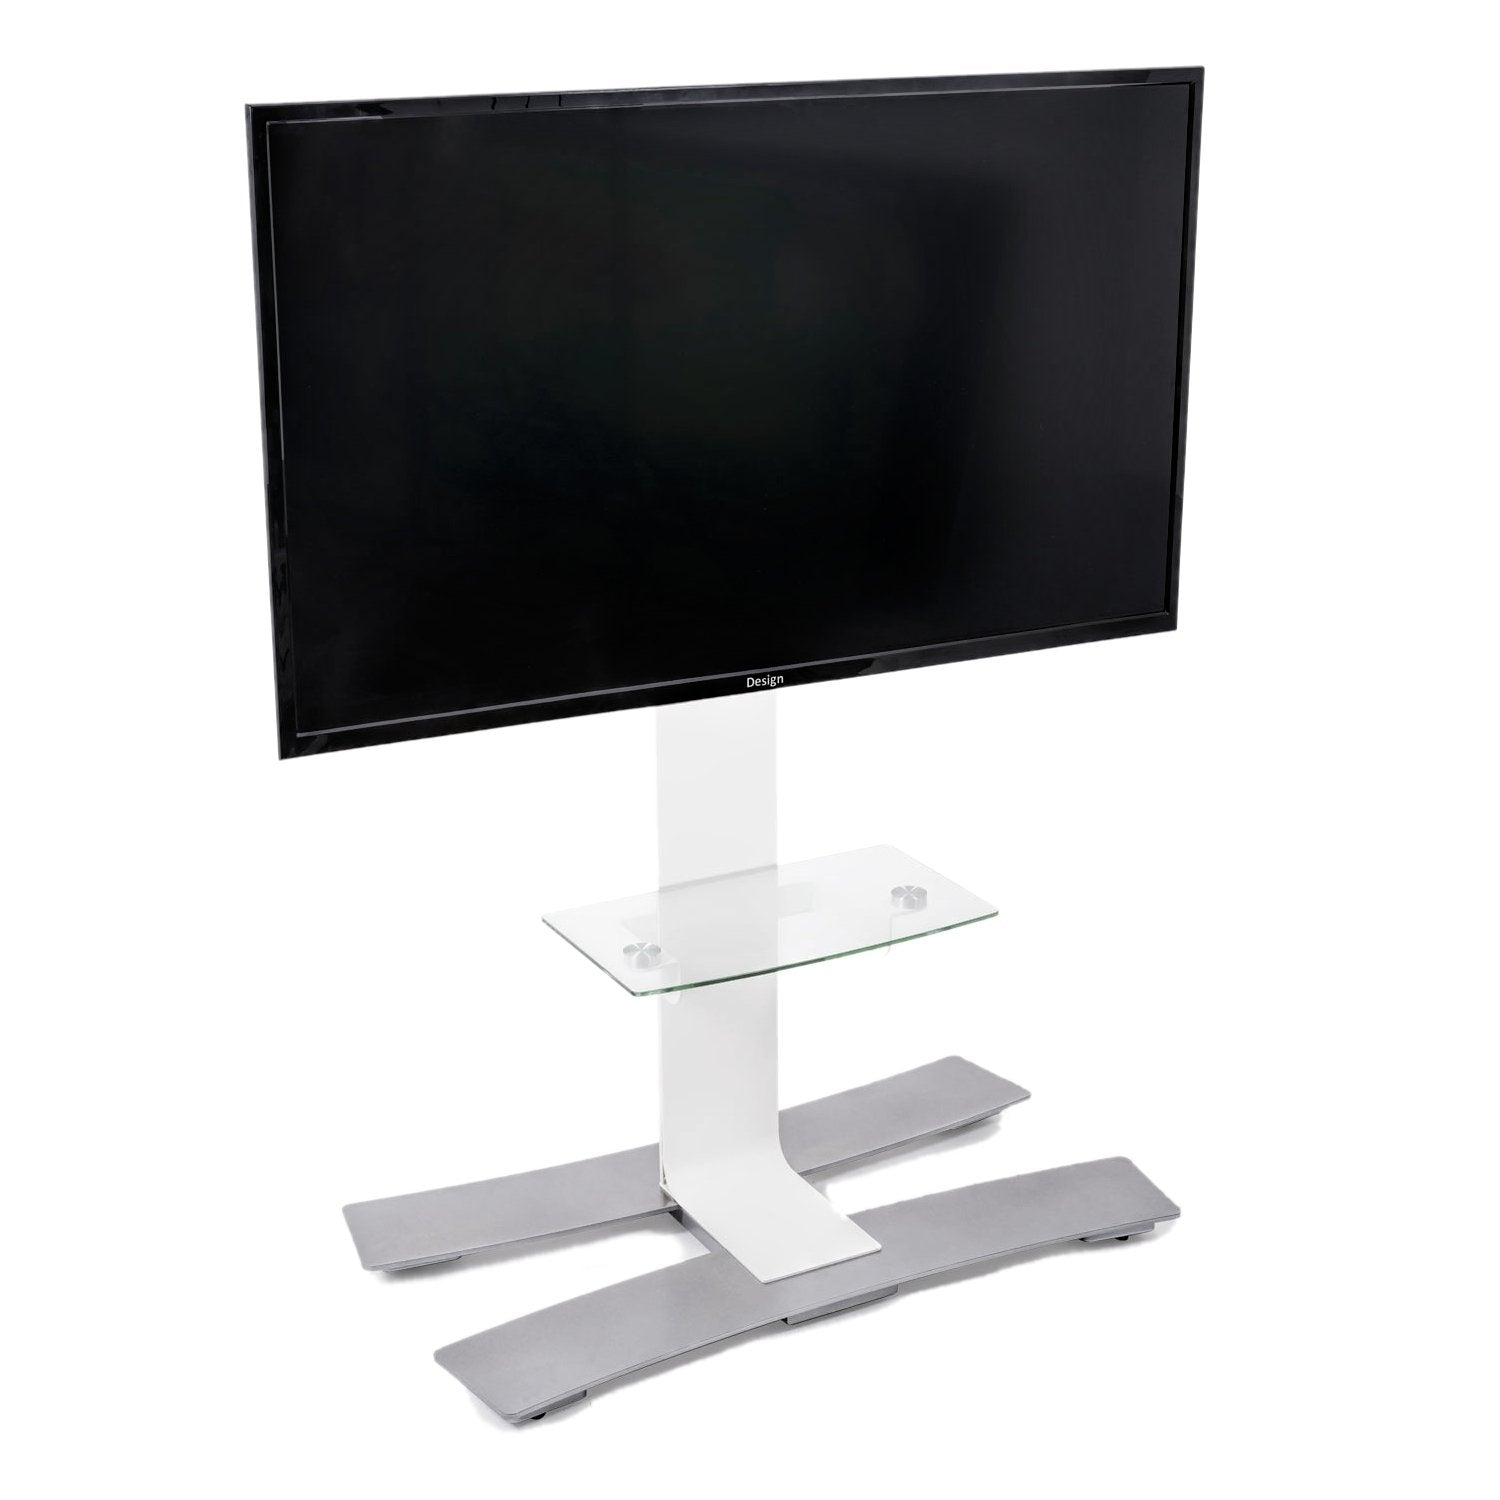 ERARD WILL™ 1050 L Mobile Stand with Shelf for 30